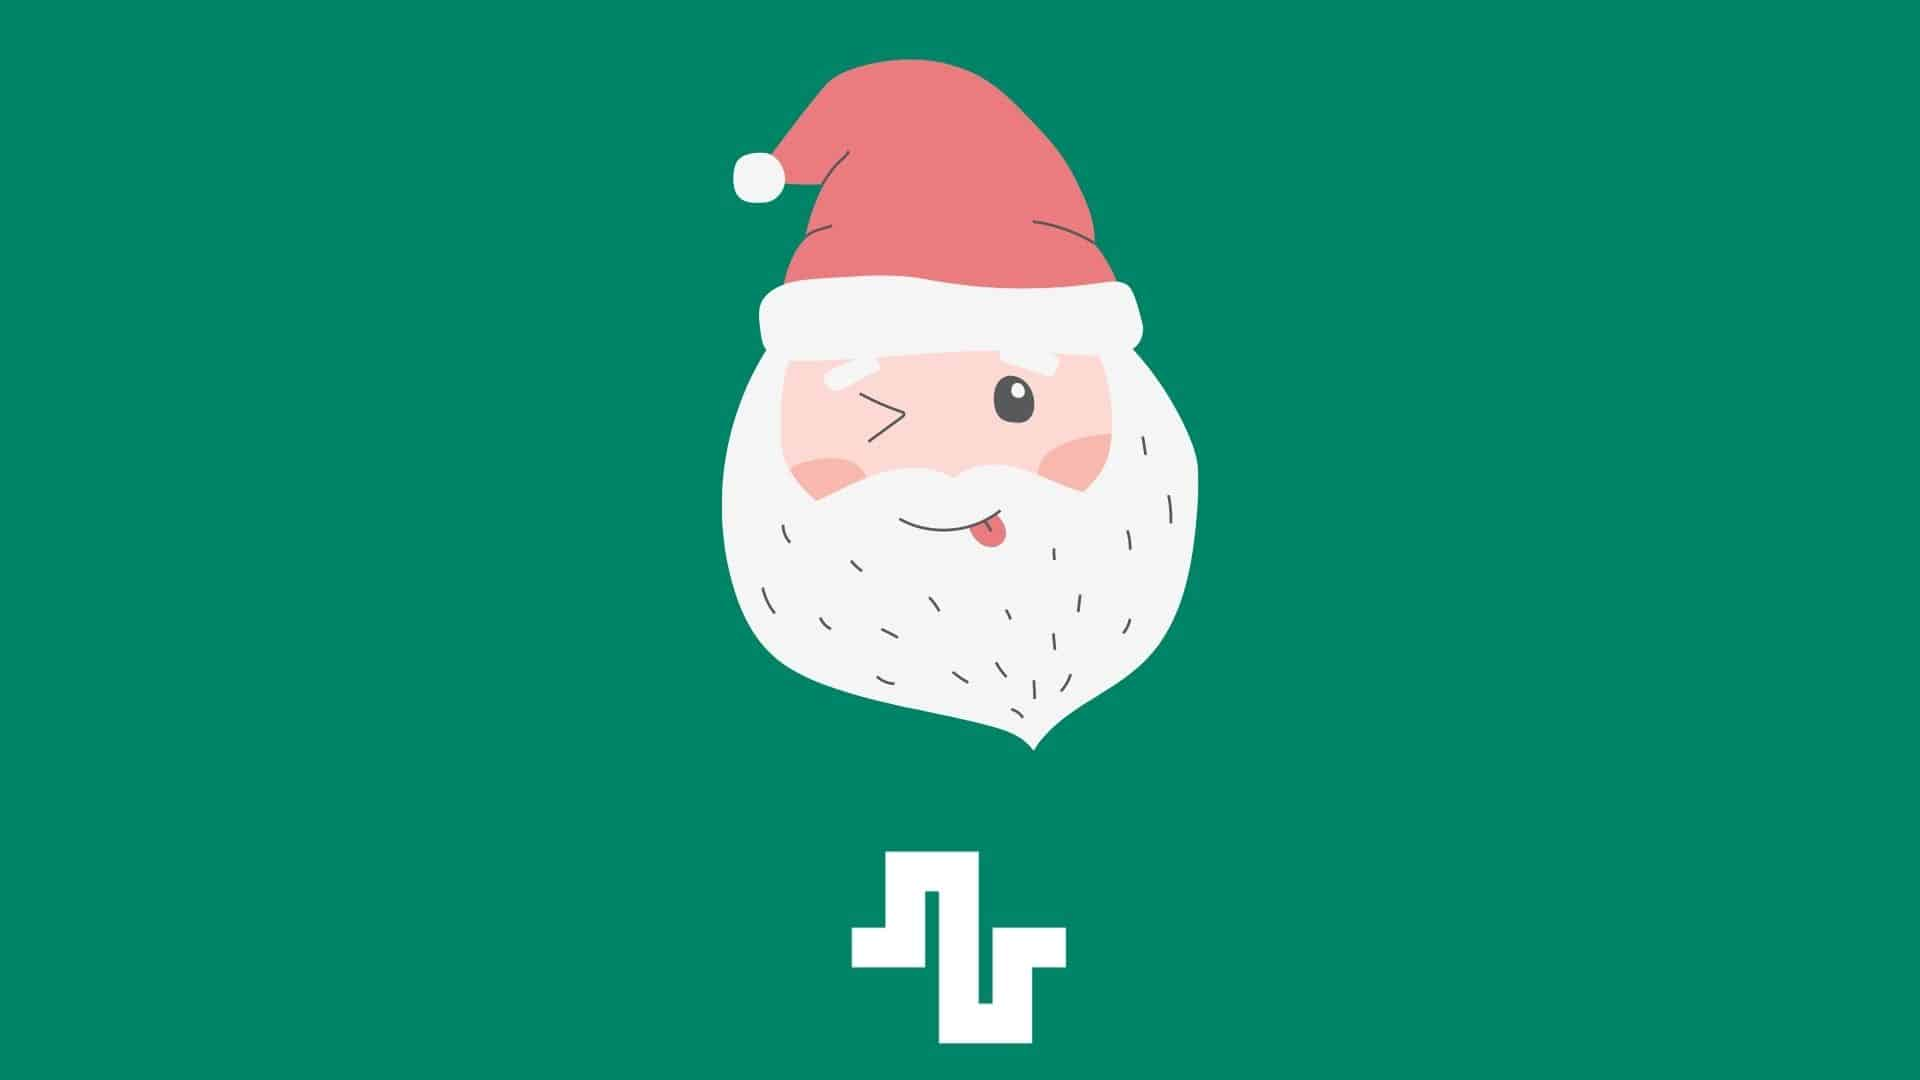 TechPulse viert 12 dagen kerst: doe mee en win!